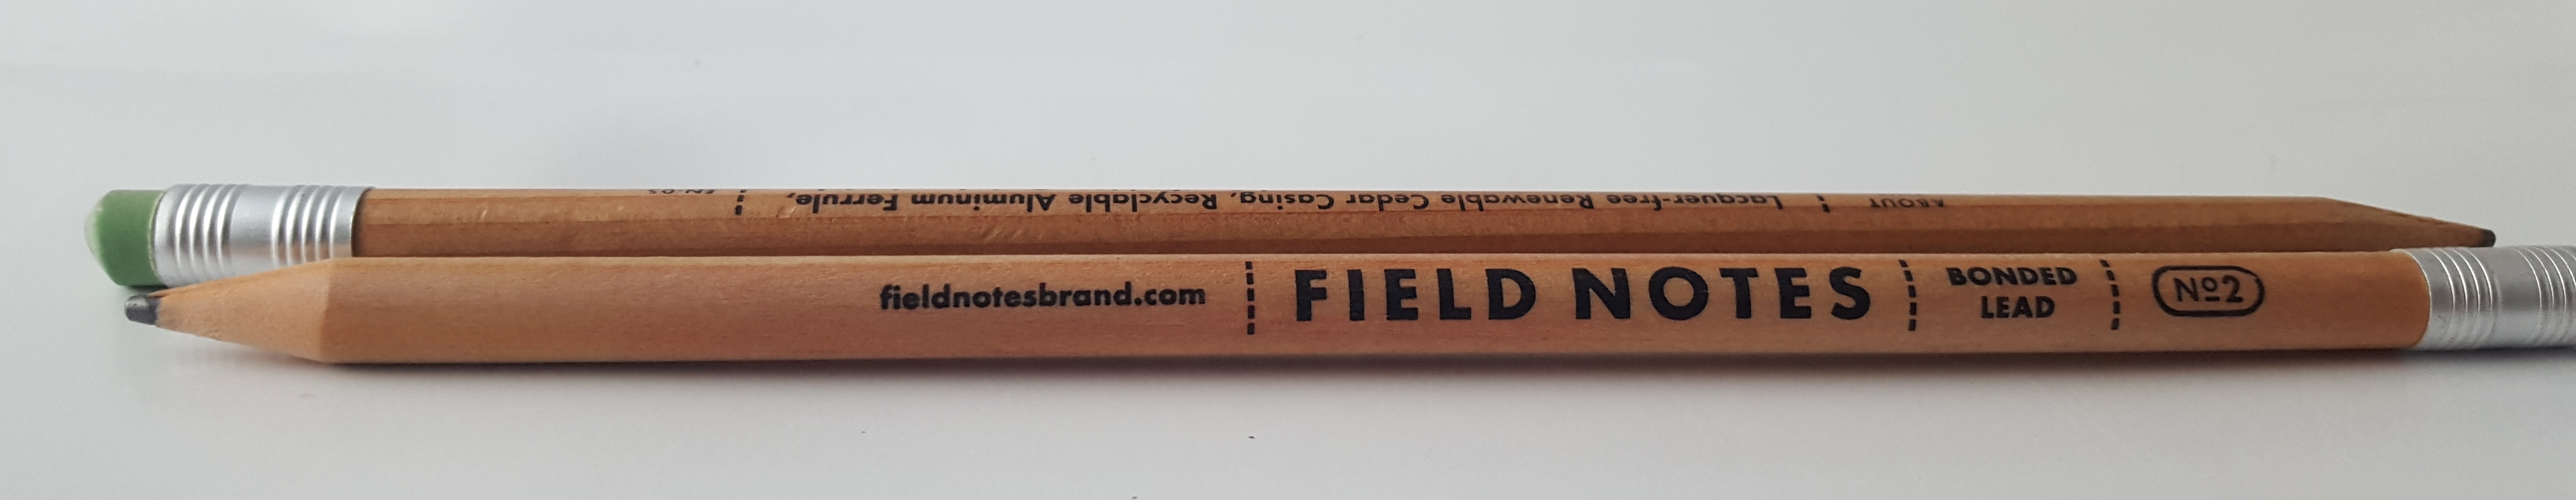 Field Notes Pencils